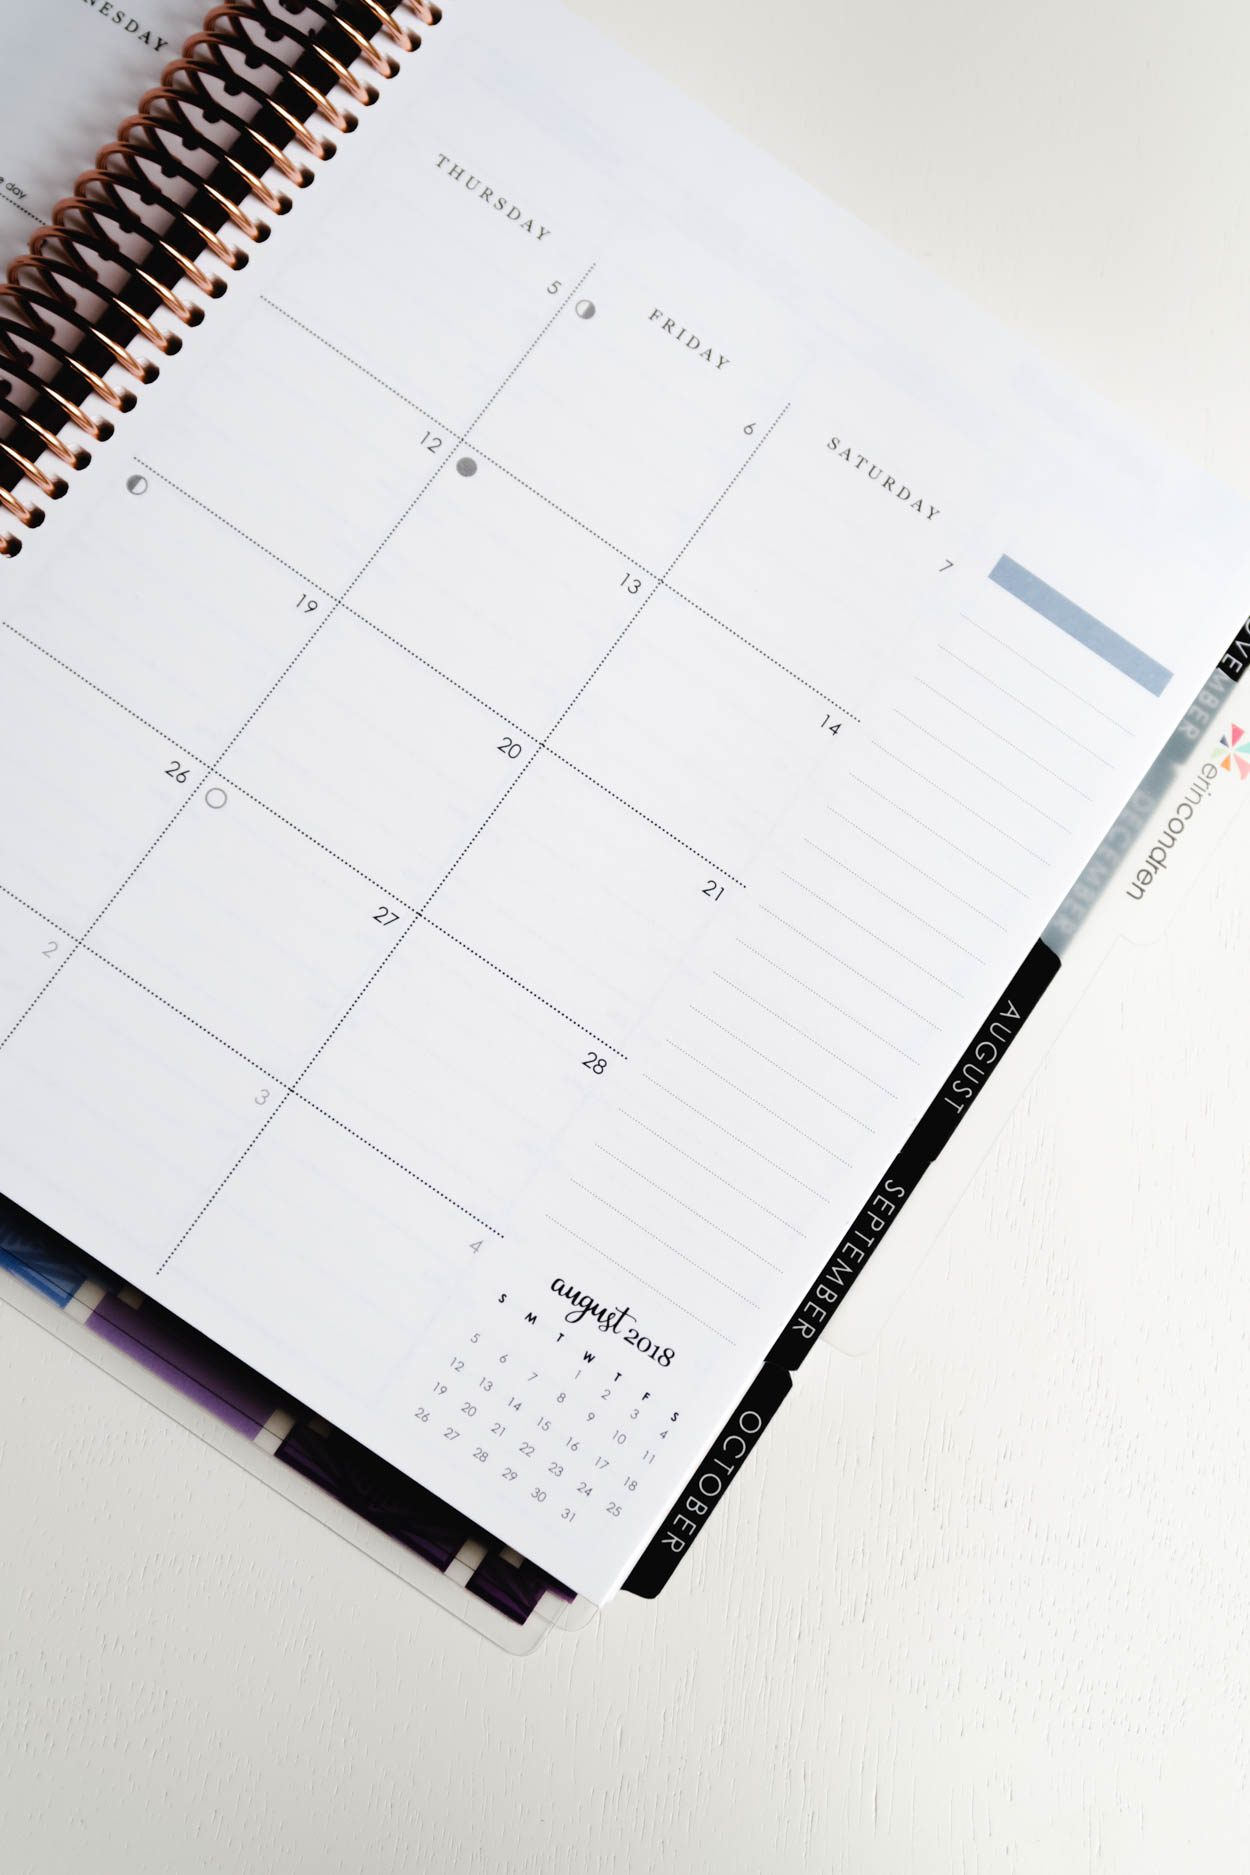 photo about Erin Condron titled Erin Condren Lifestyle Planner and Superior Year Handle